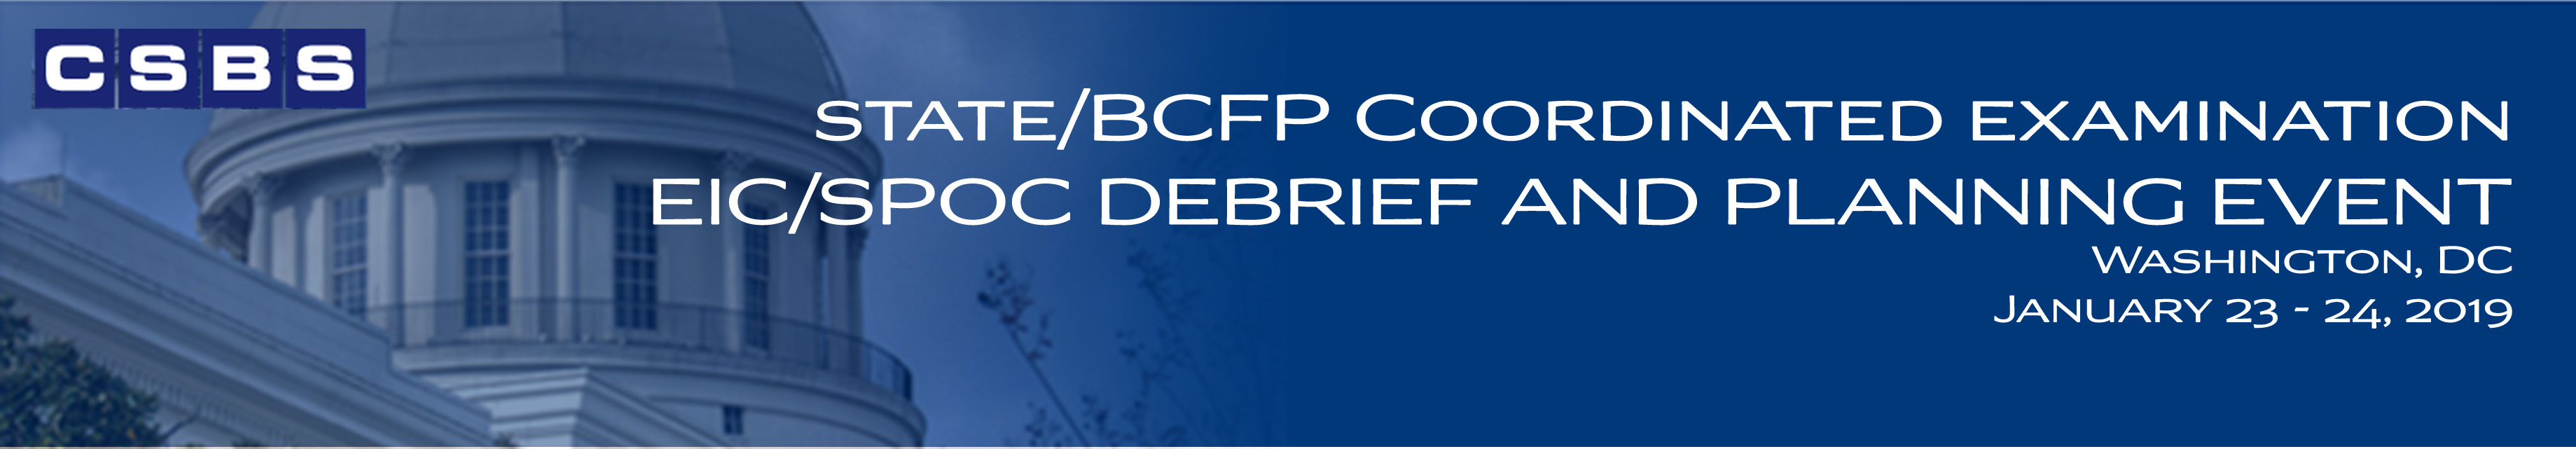 State/BCFP Coordinated Examination EIC/SPOC Debrief and Planning Event